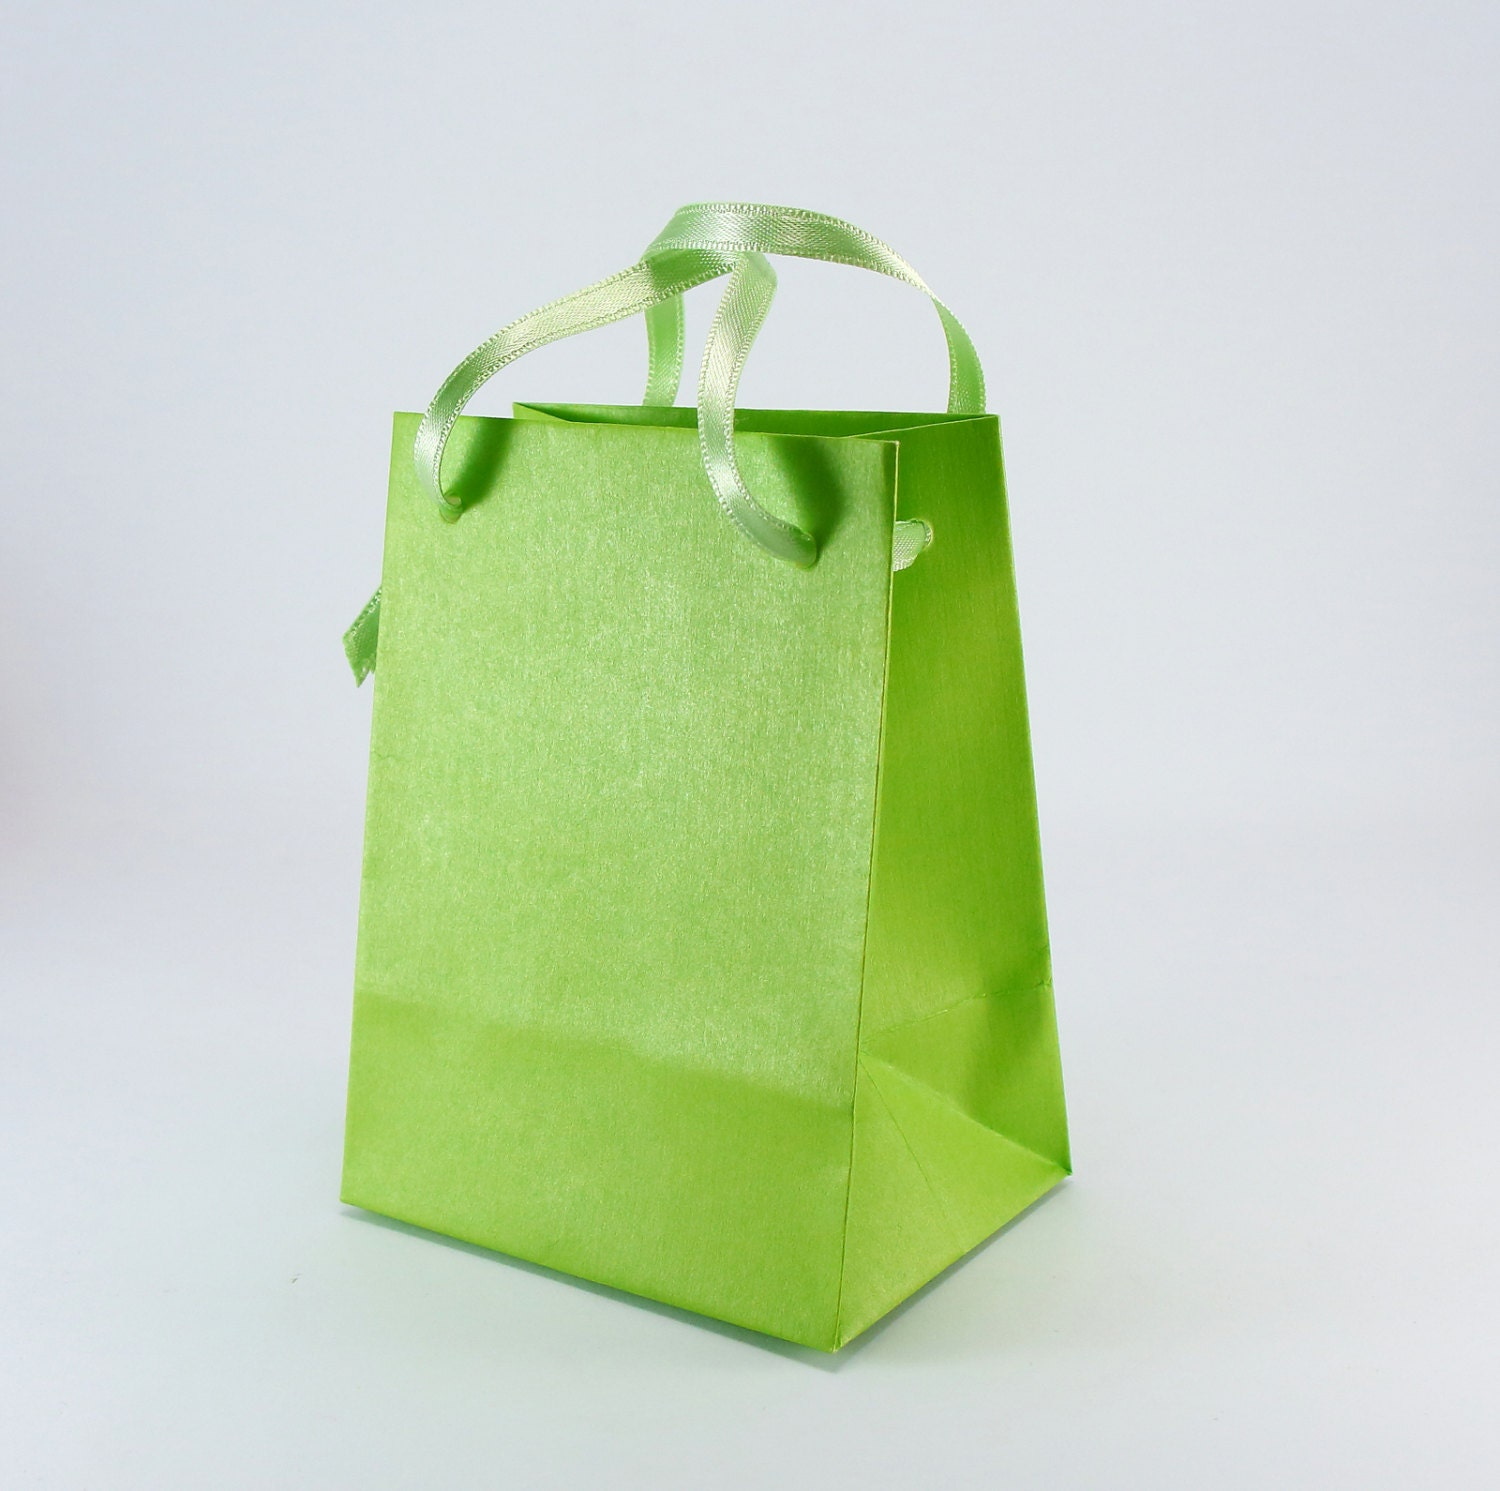 Lime green paper bags with handles